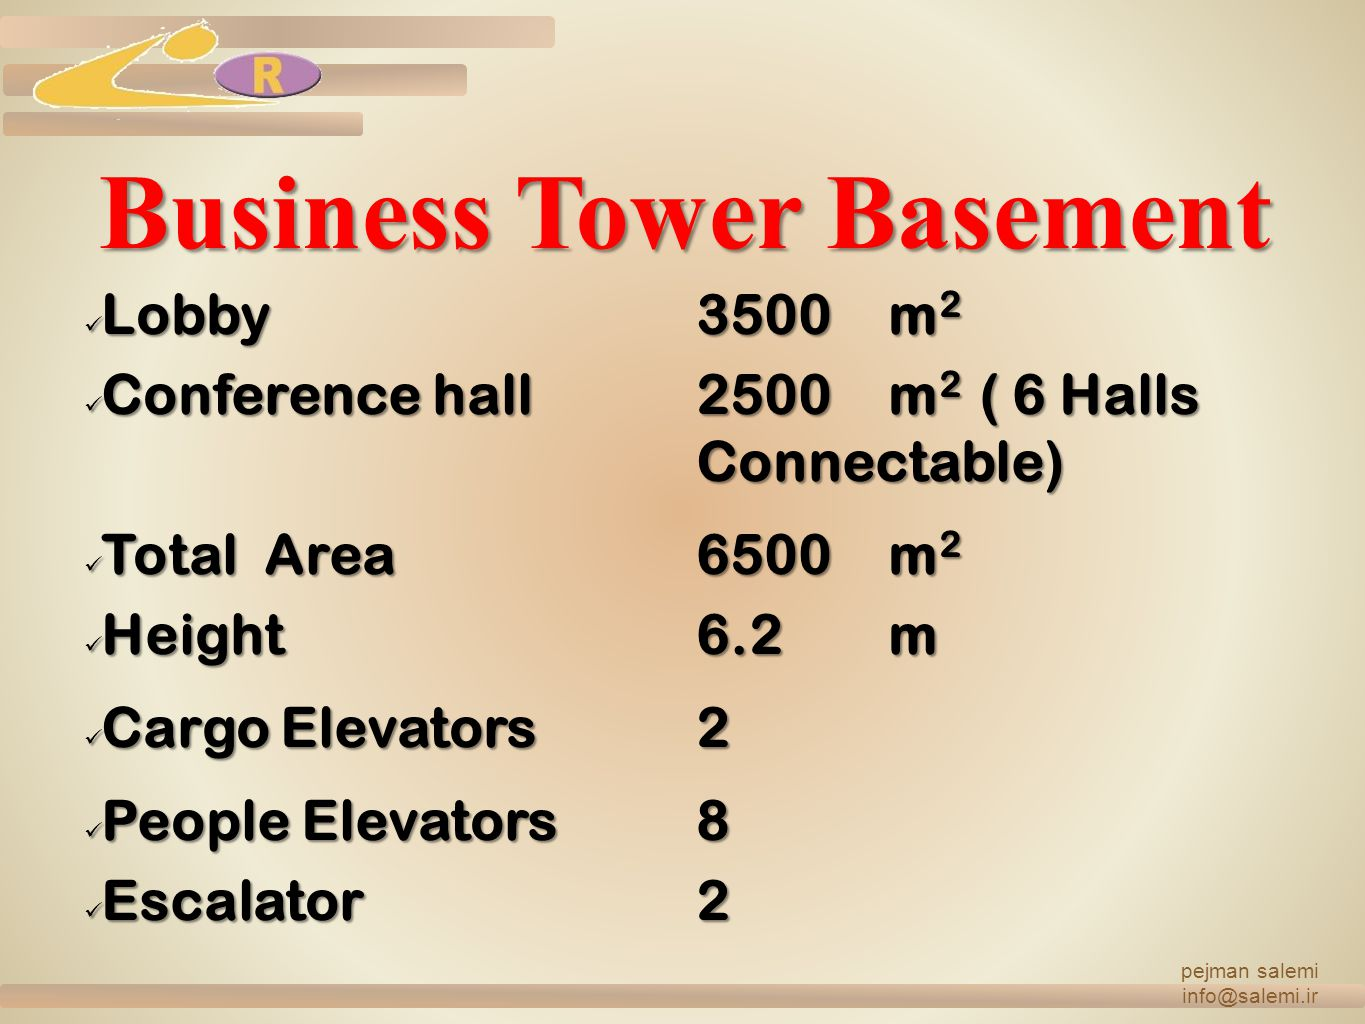 Business Tower Basement